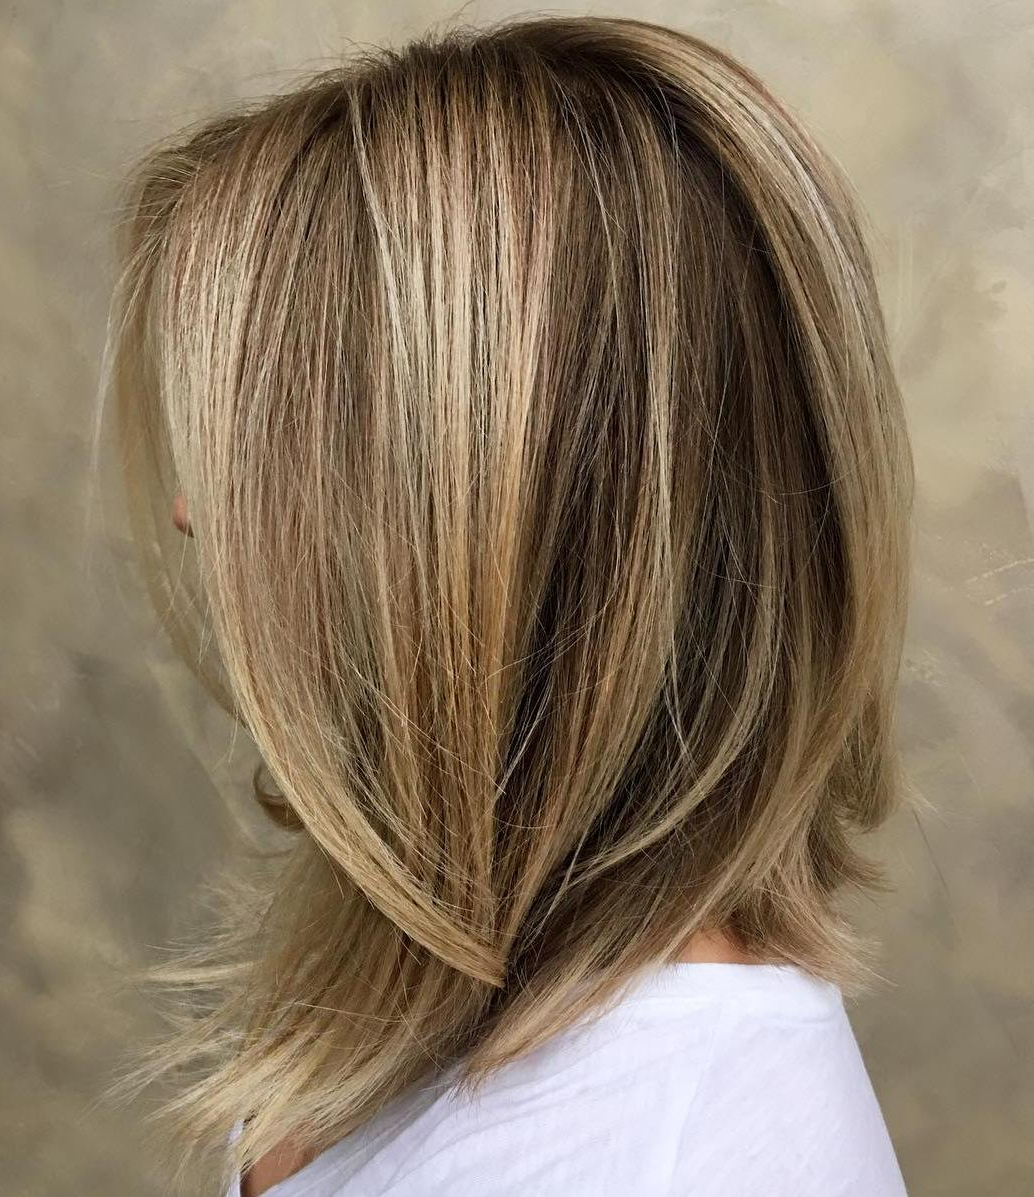 60 Inspiring Long Bob Hairstyles And Long Bob Haircuts For 2019 In Popular Two Tier Long Hairstyles (View 17 of 20)